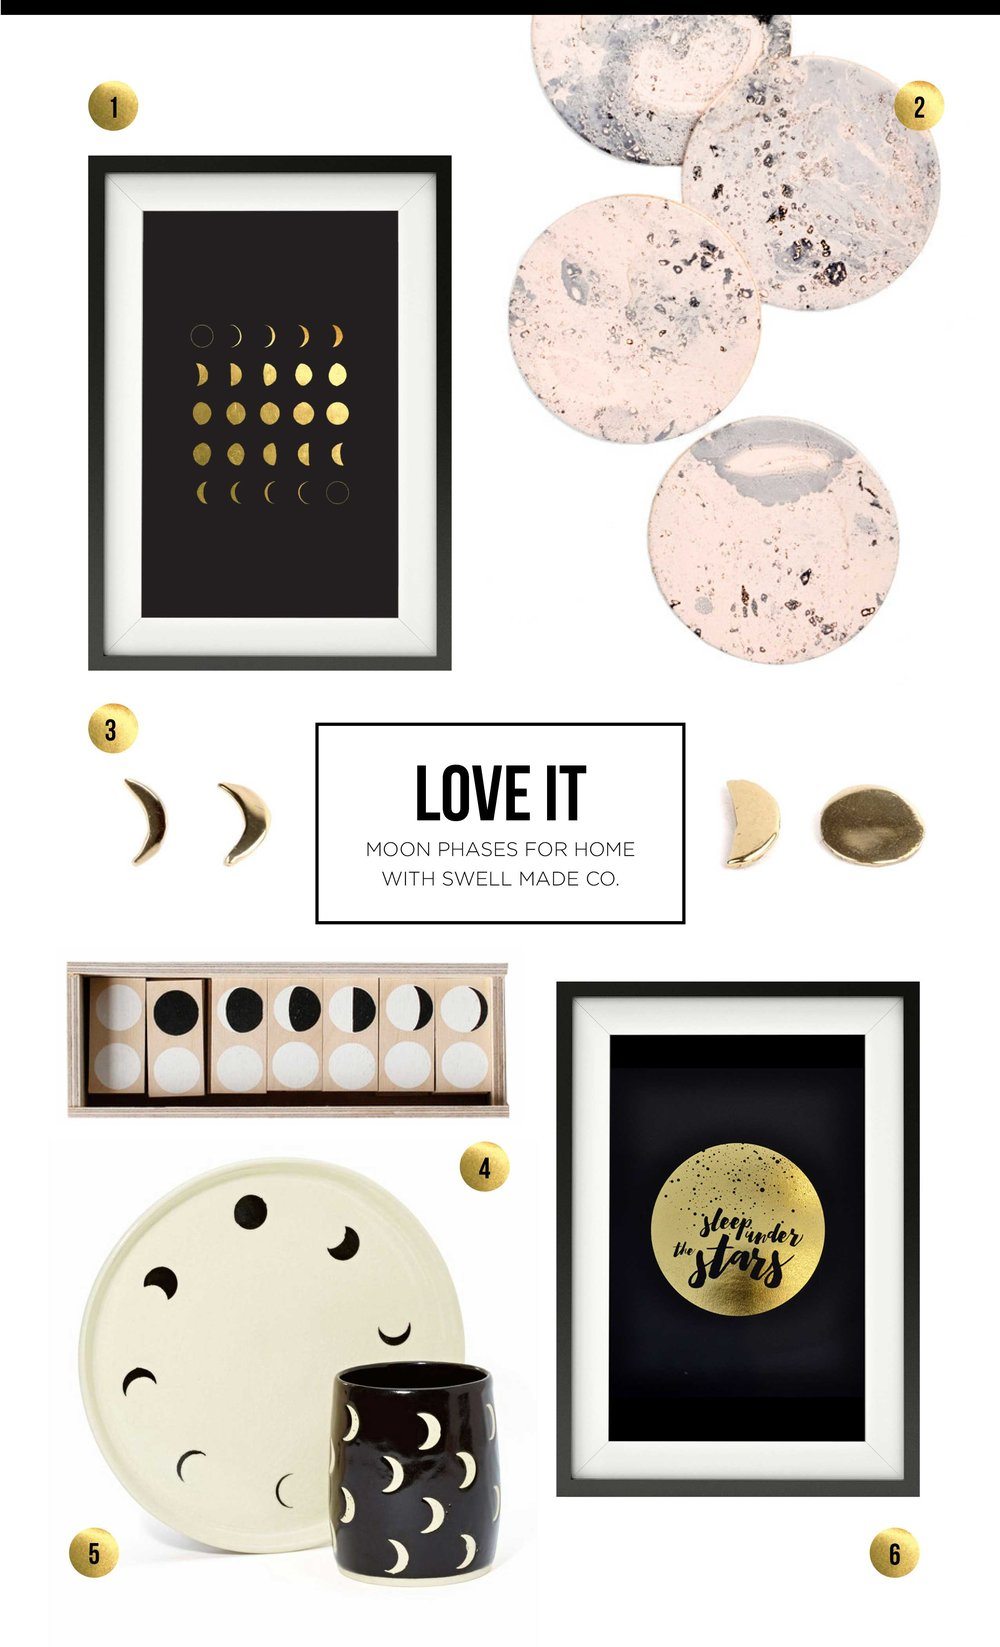 LOVE IT | Moon phases for the home with Swell Made Co.